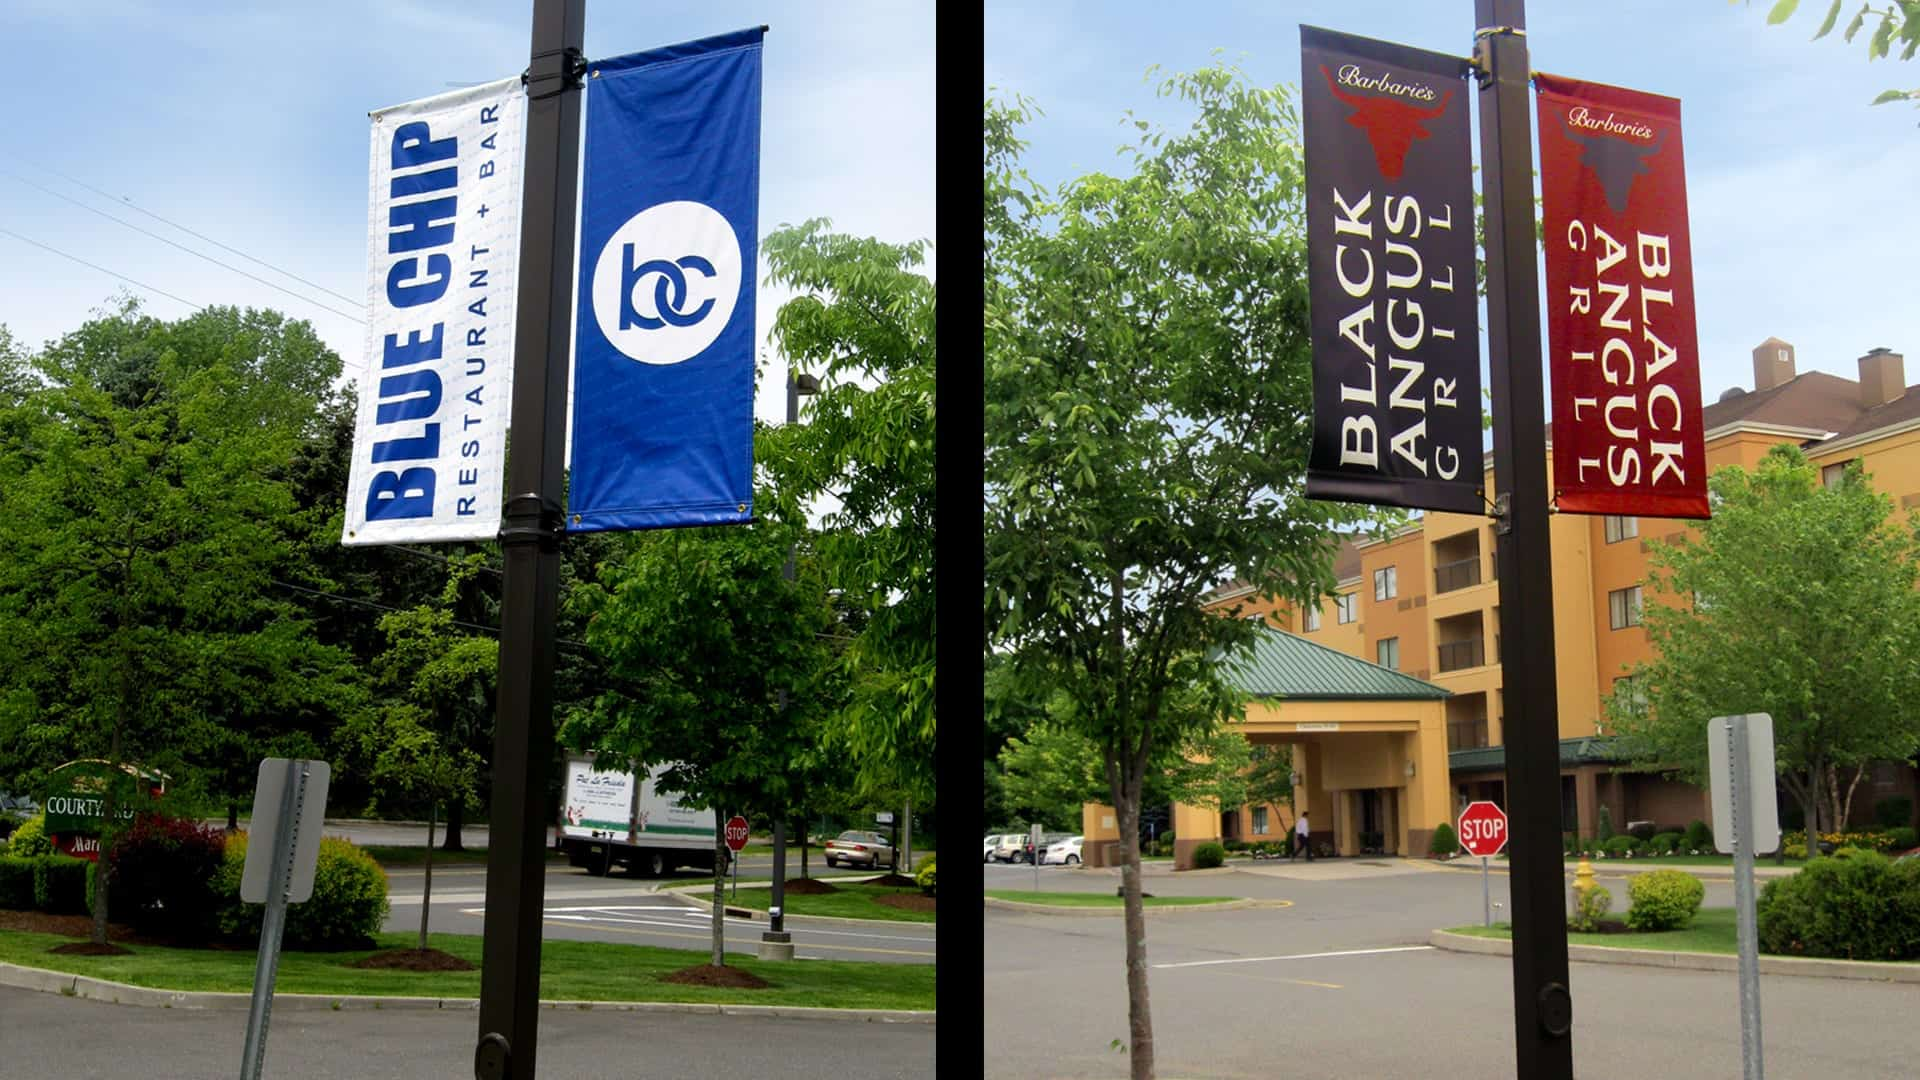 Banners & Posters - Blue Chip Boulevard